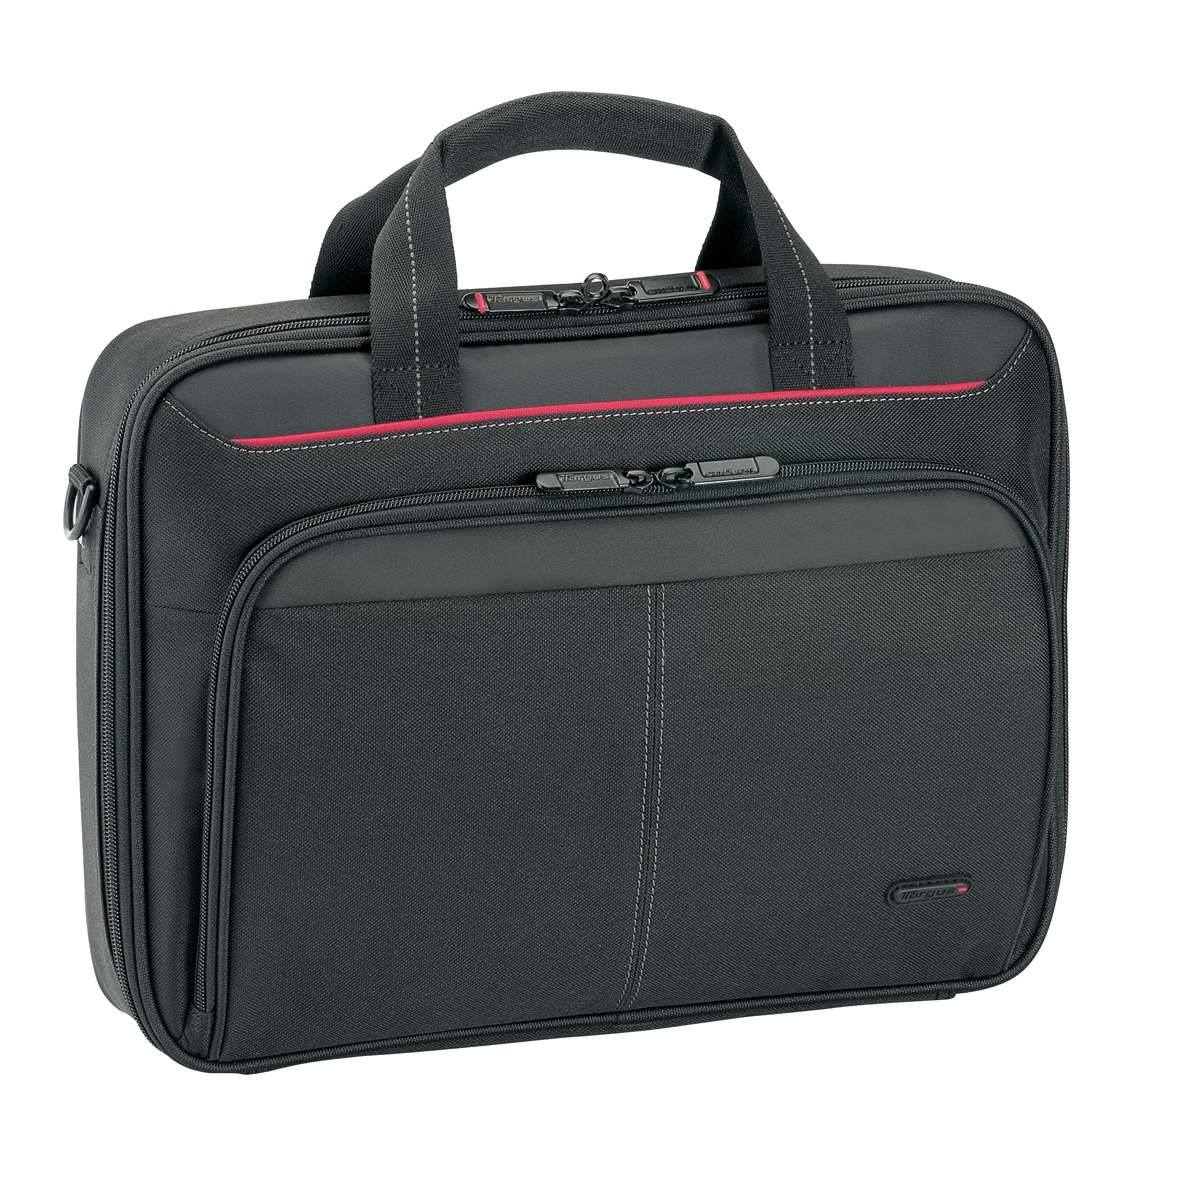 0010658 classic-12-134-clamshell-laptop-bag-black.jpeg 7f46976ca74a4